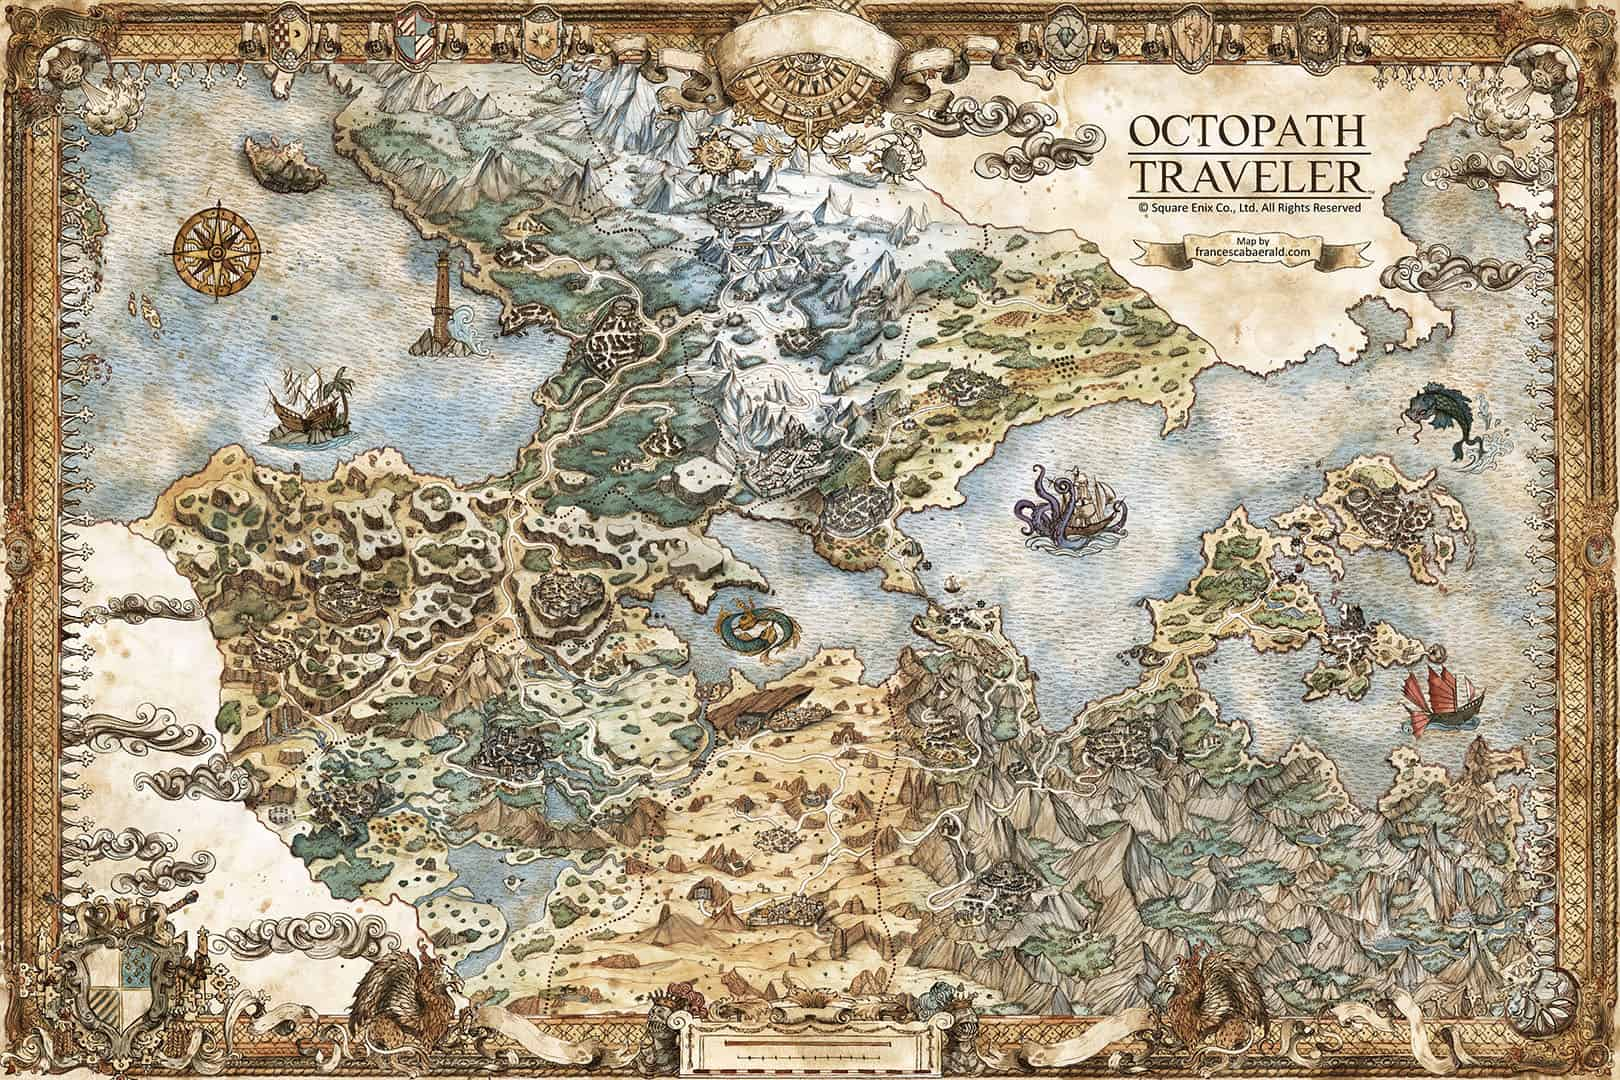 Francesca Baerald - Freelance Fantasy Map Artist and Cartographer